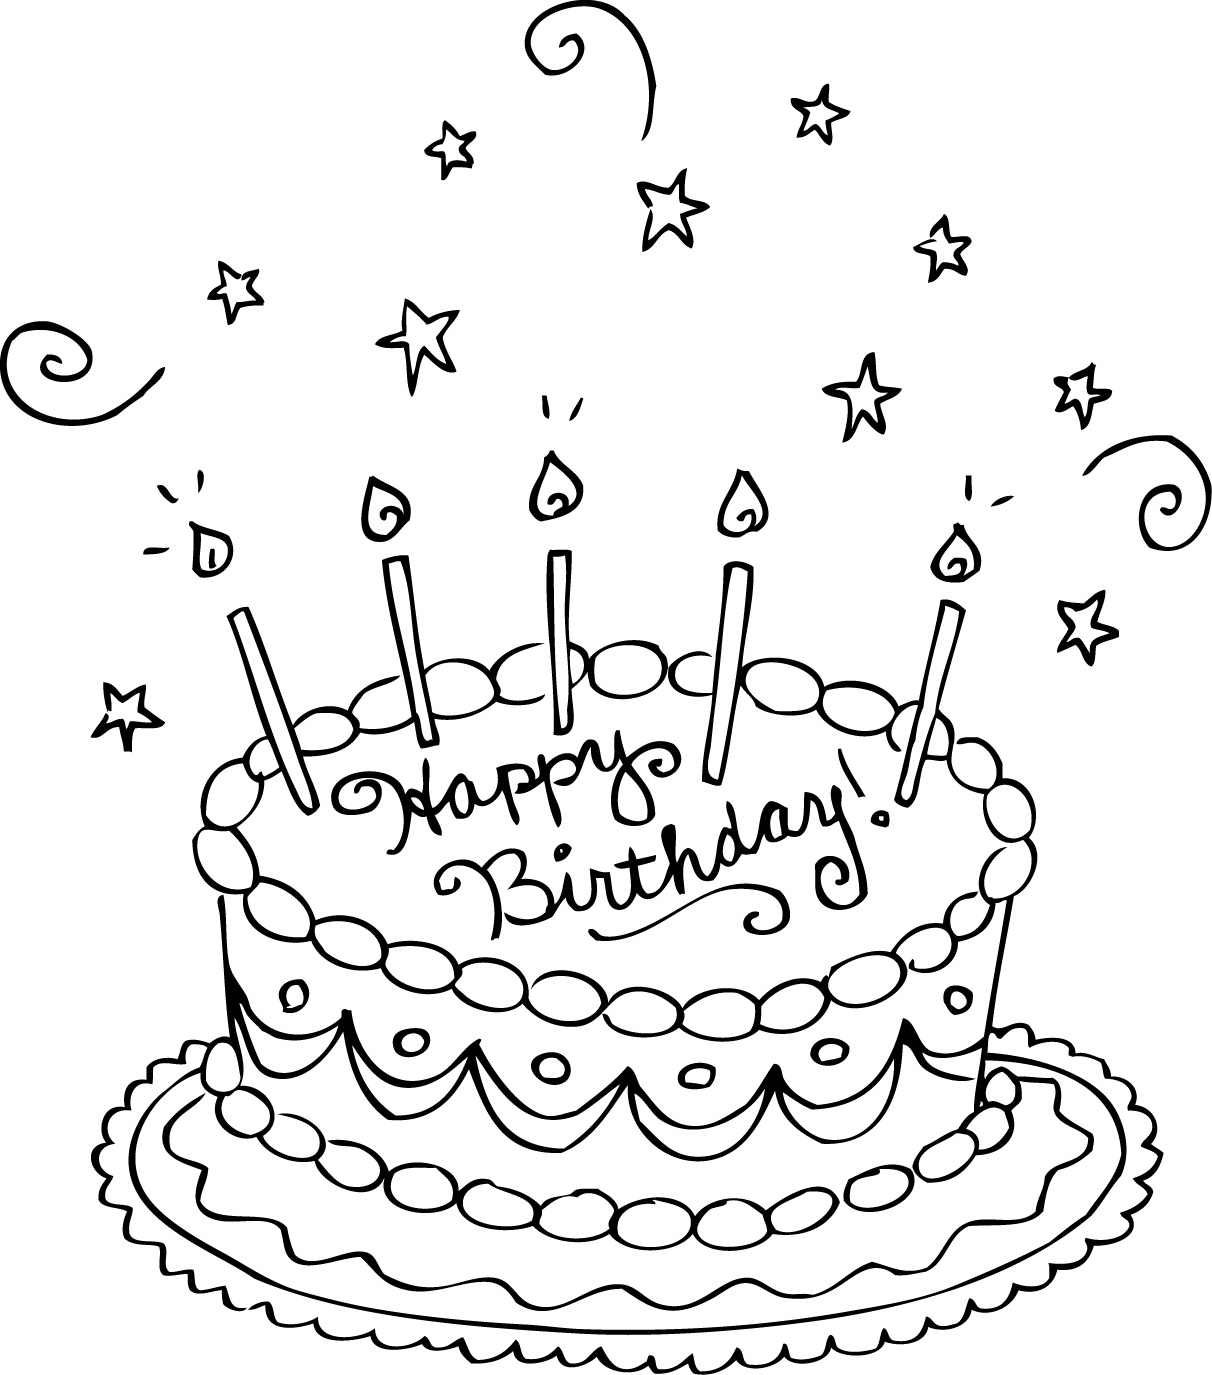 Birthday Cake Coloring Pages Preschool At Getdrawings